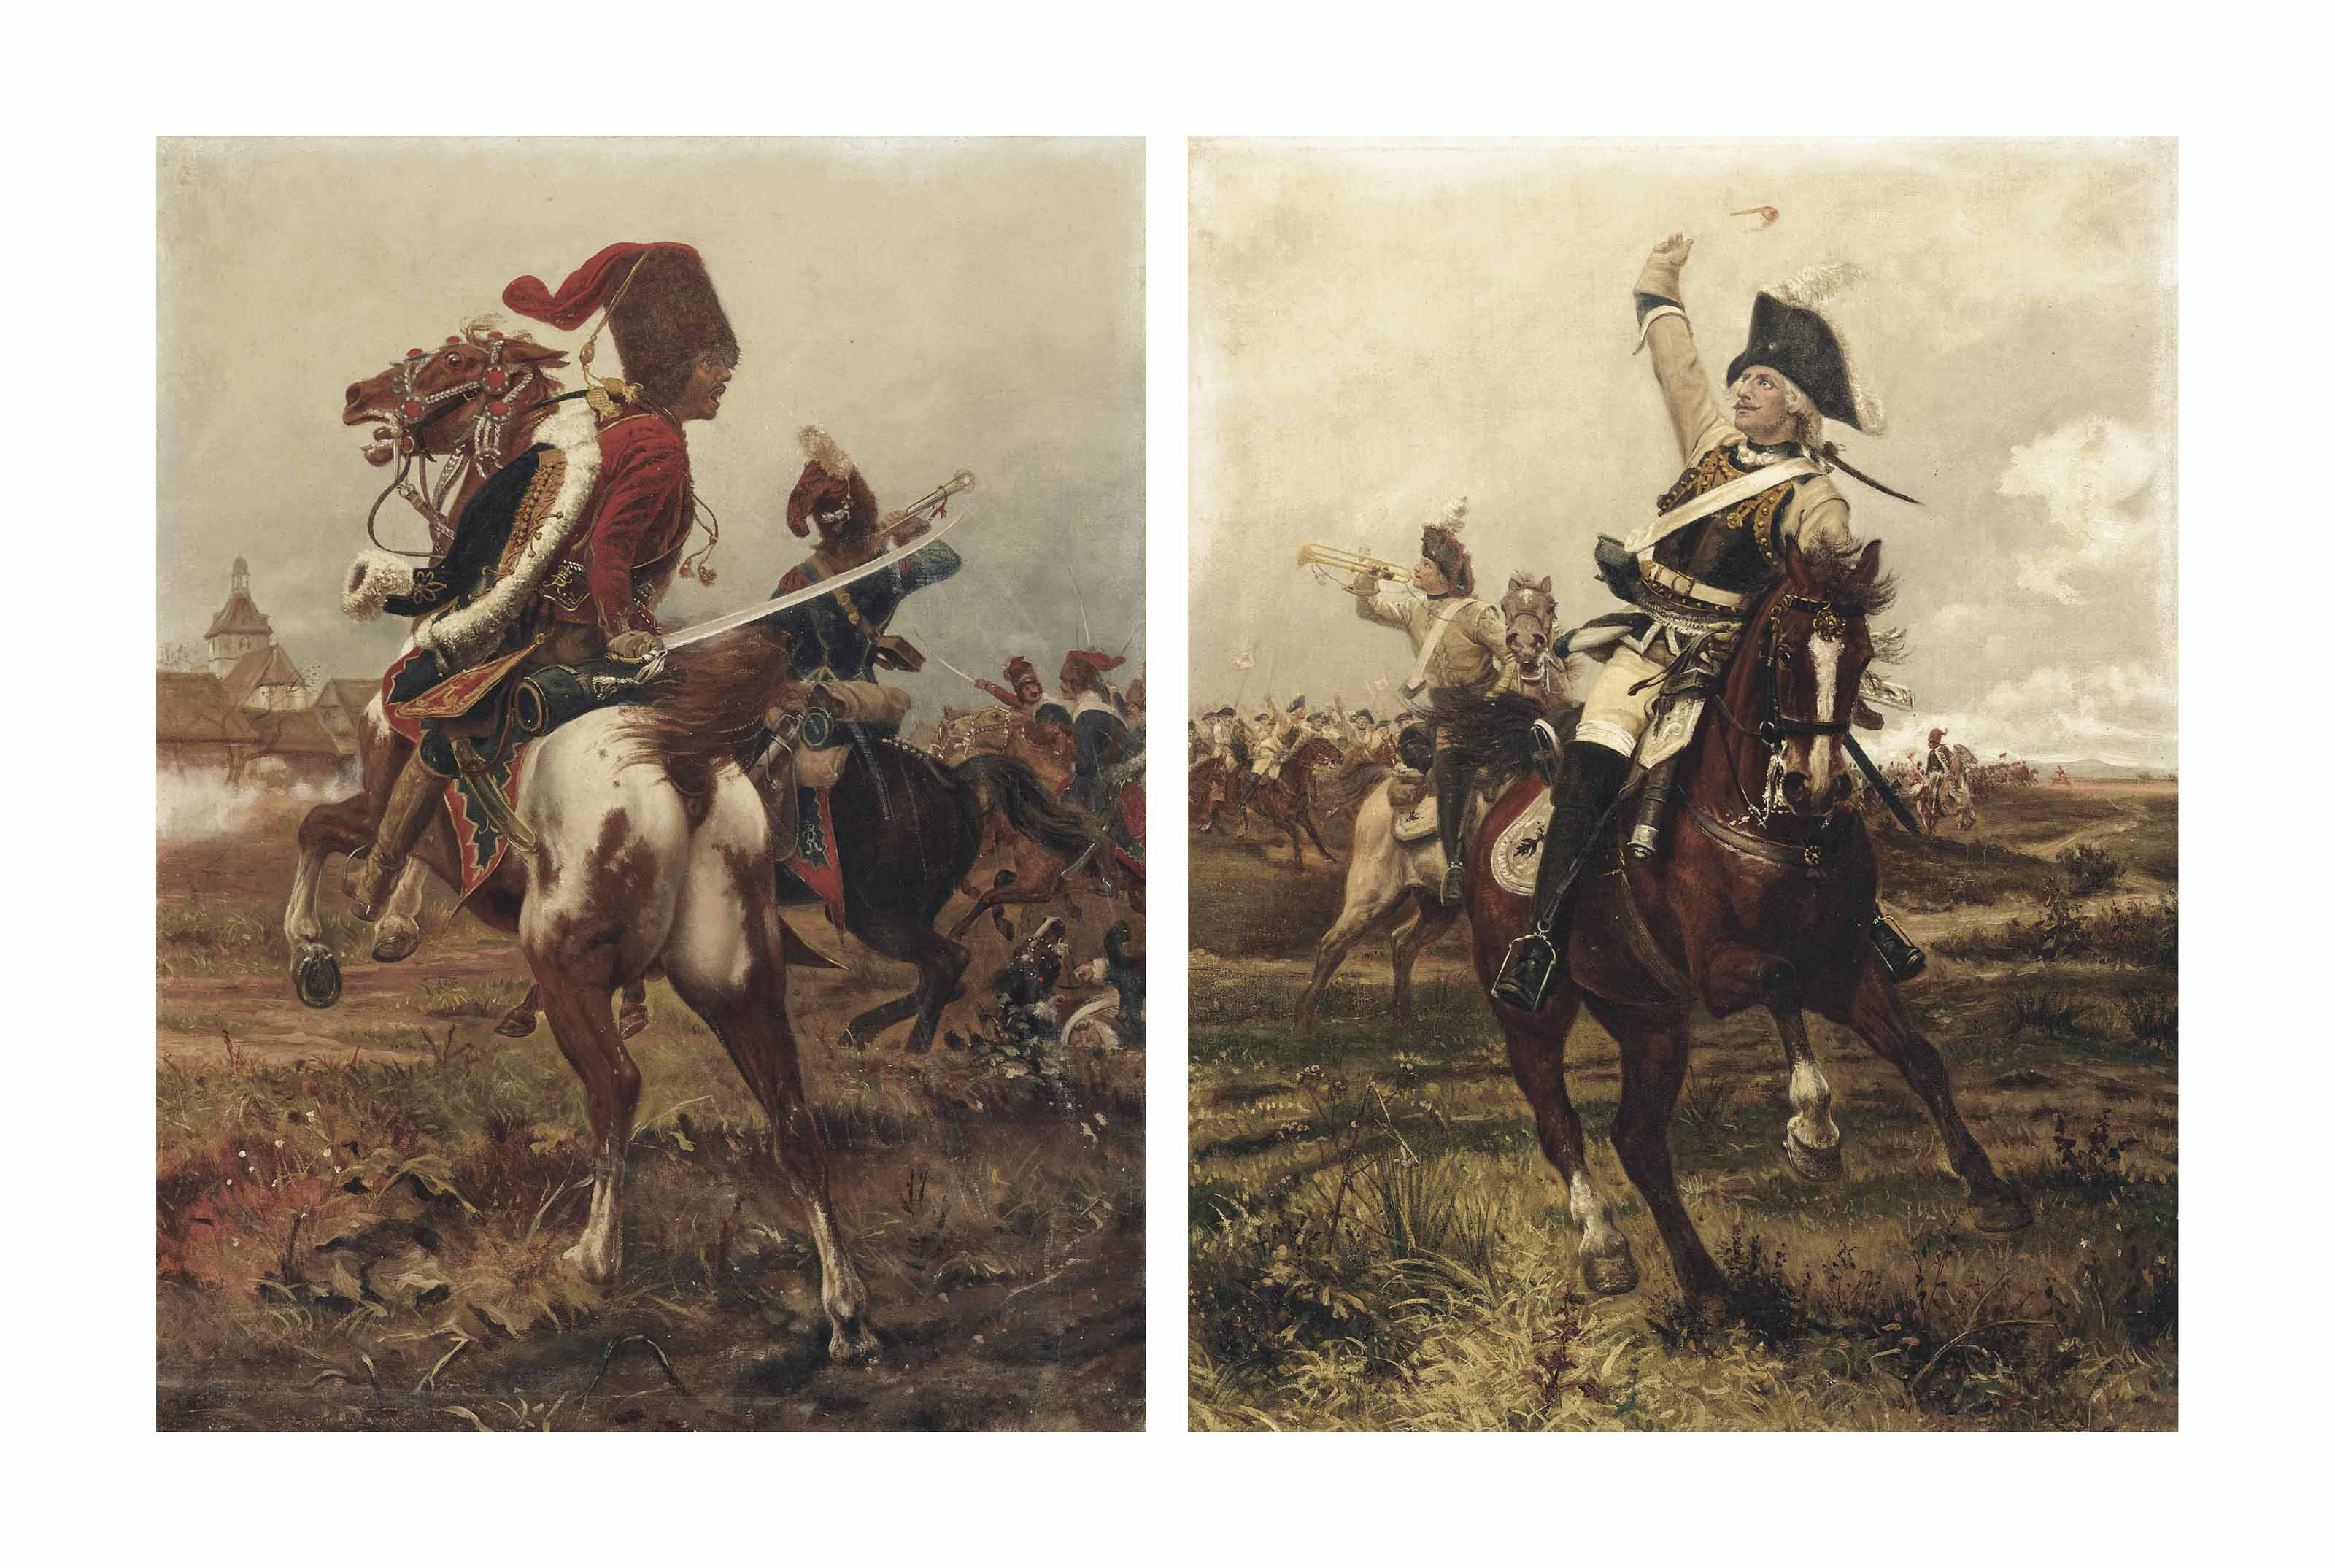 A Zieten Hussar in the heart of battle; and A Cuirassier leading the charge